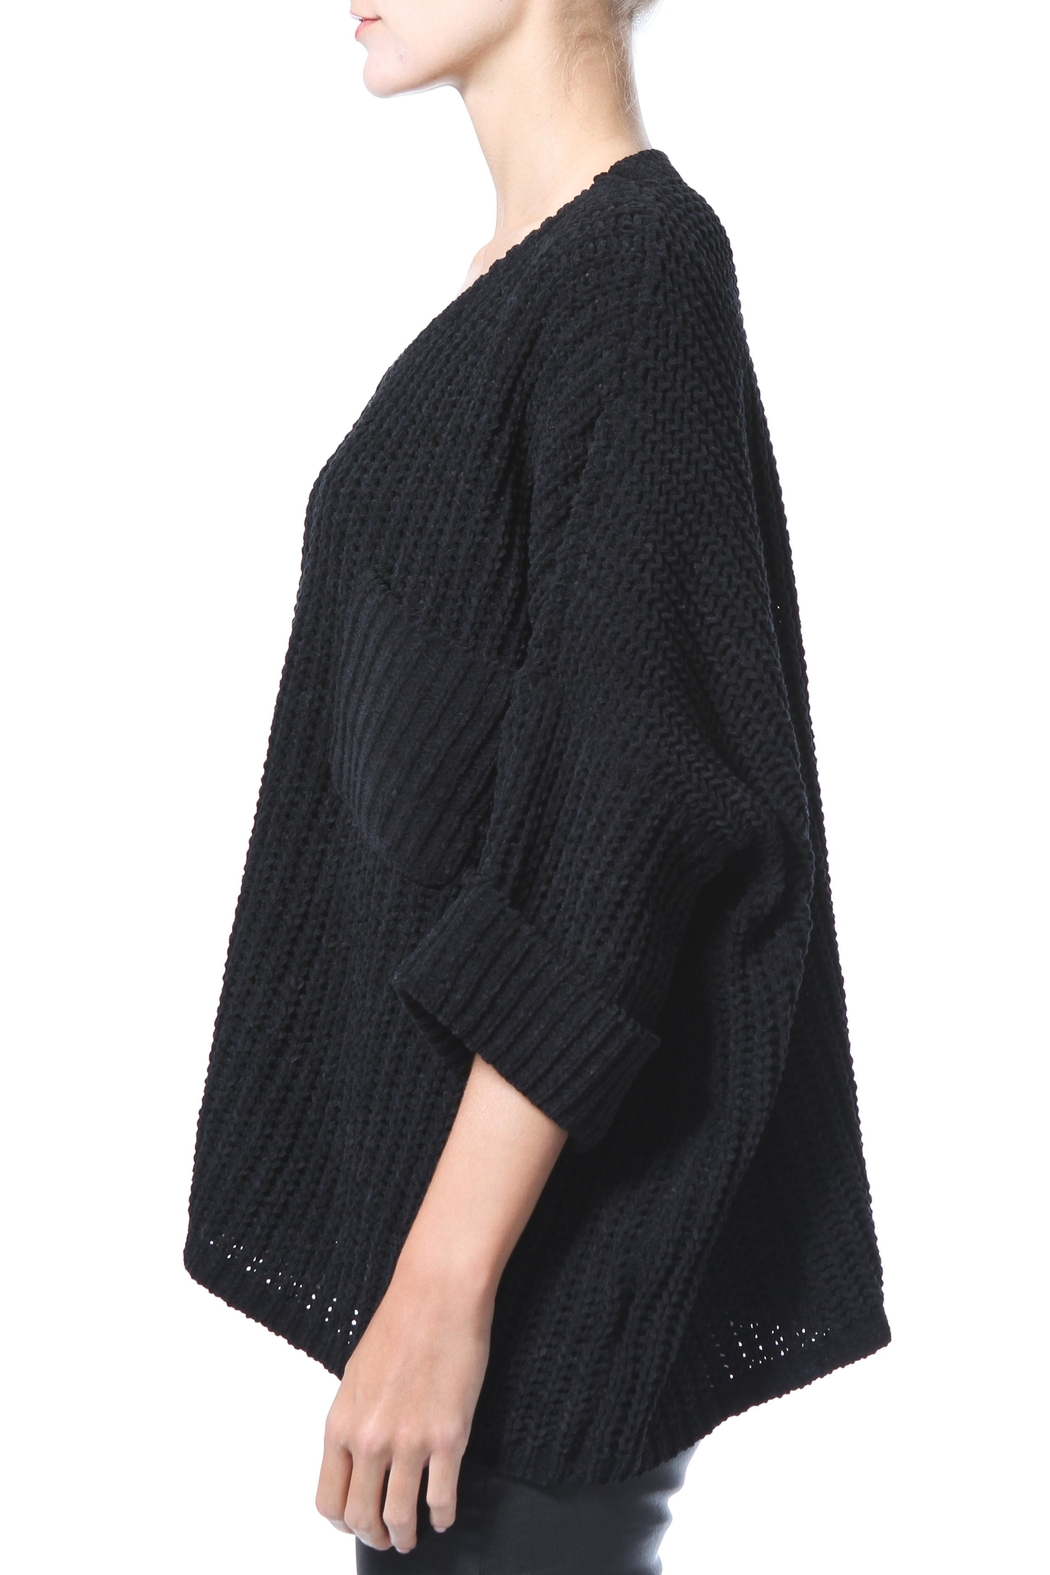 Madonna & Co Chenille Sweater - Front Full Image